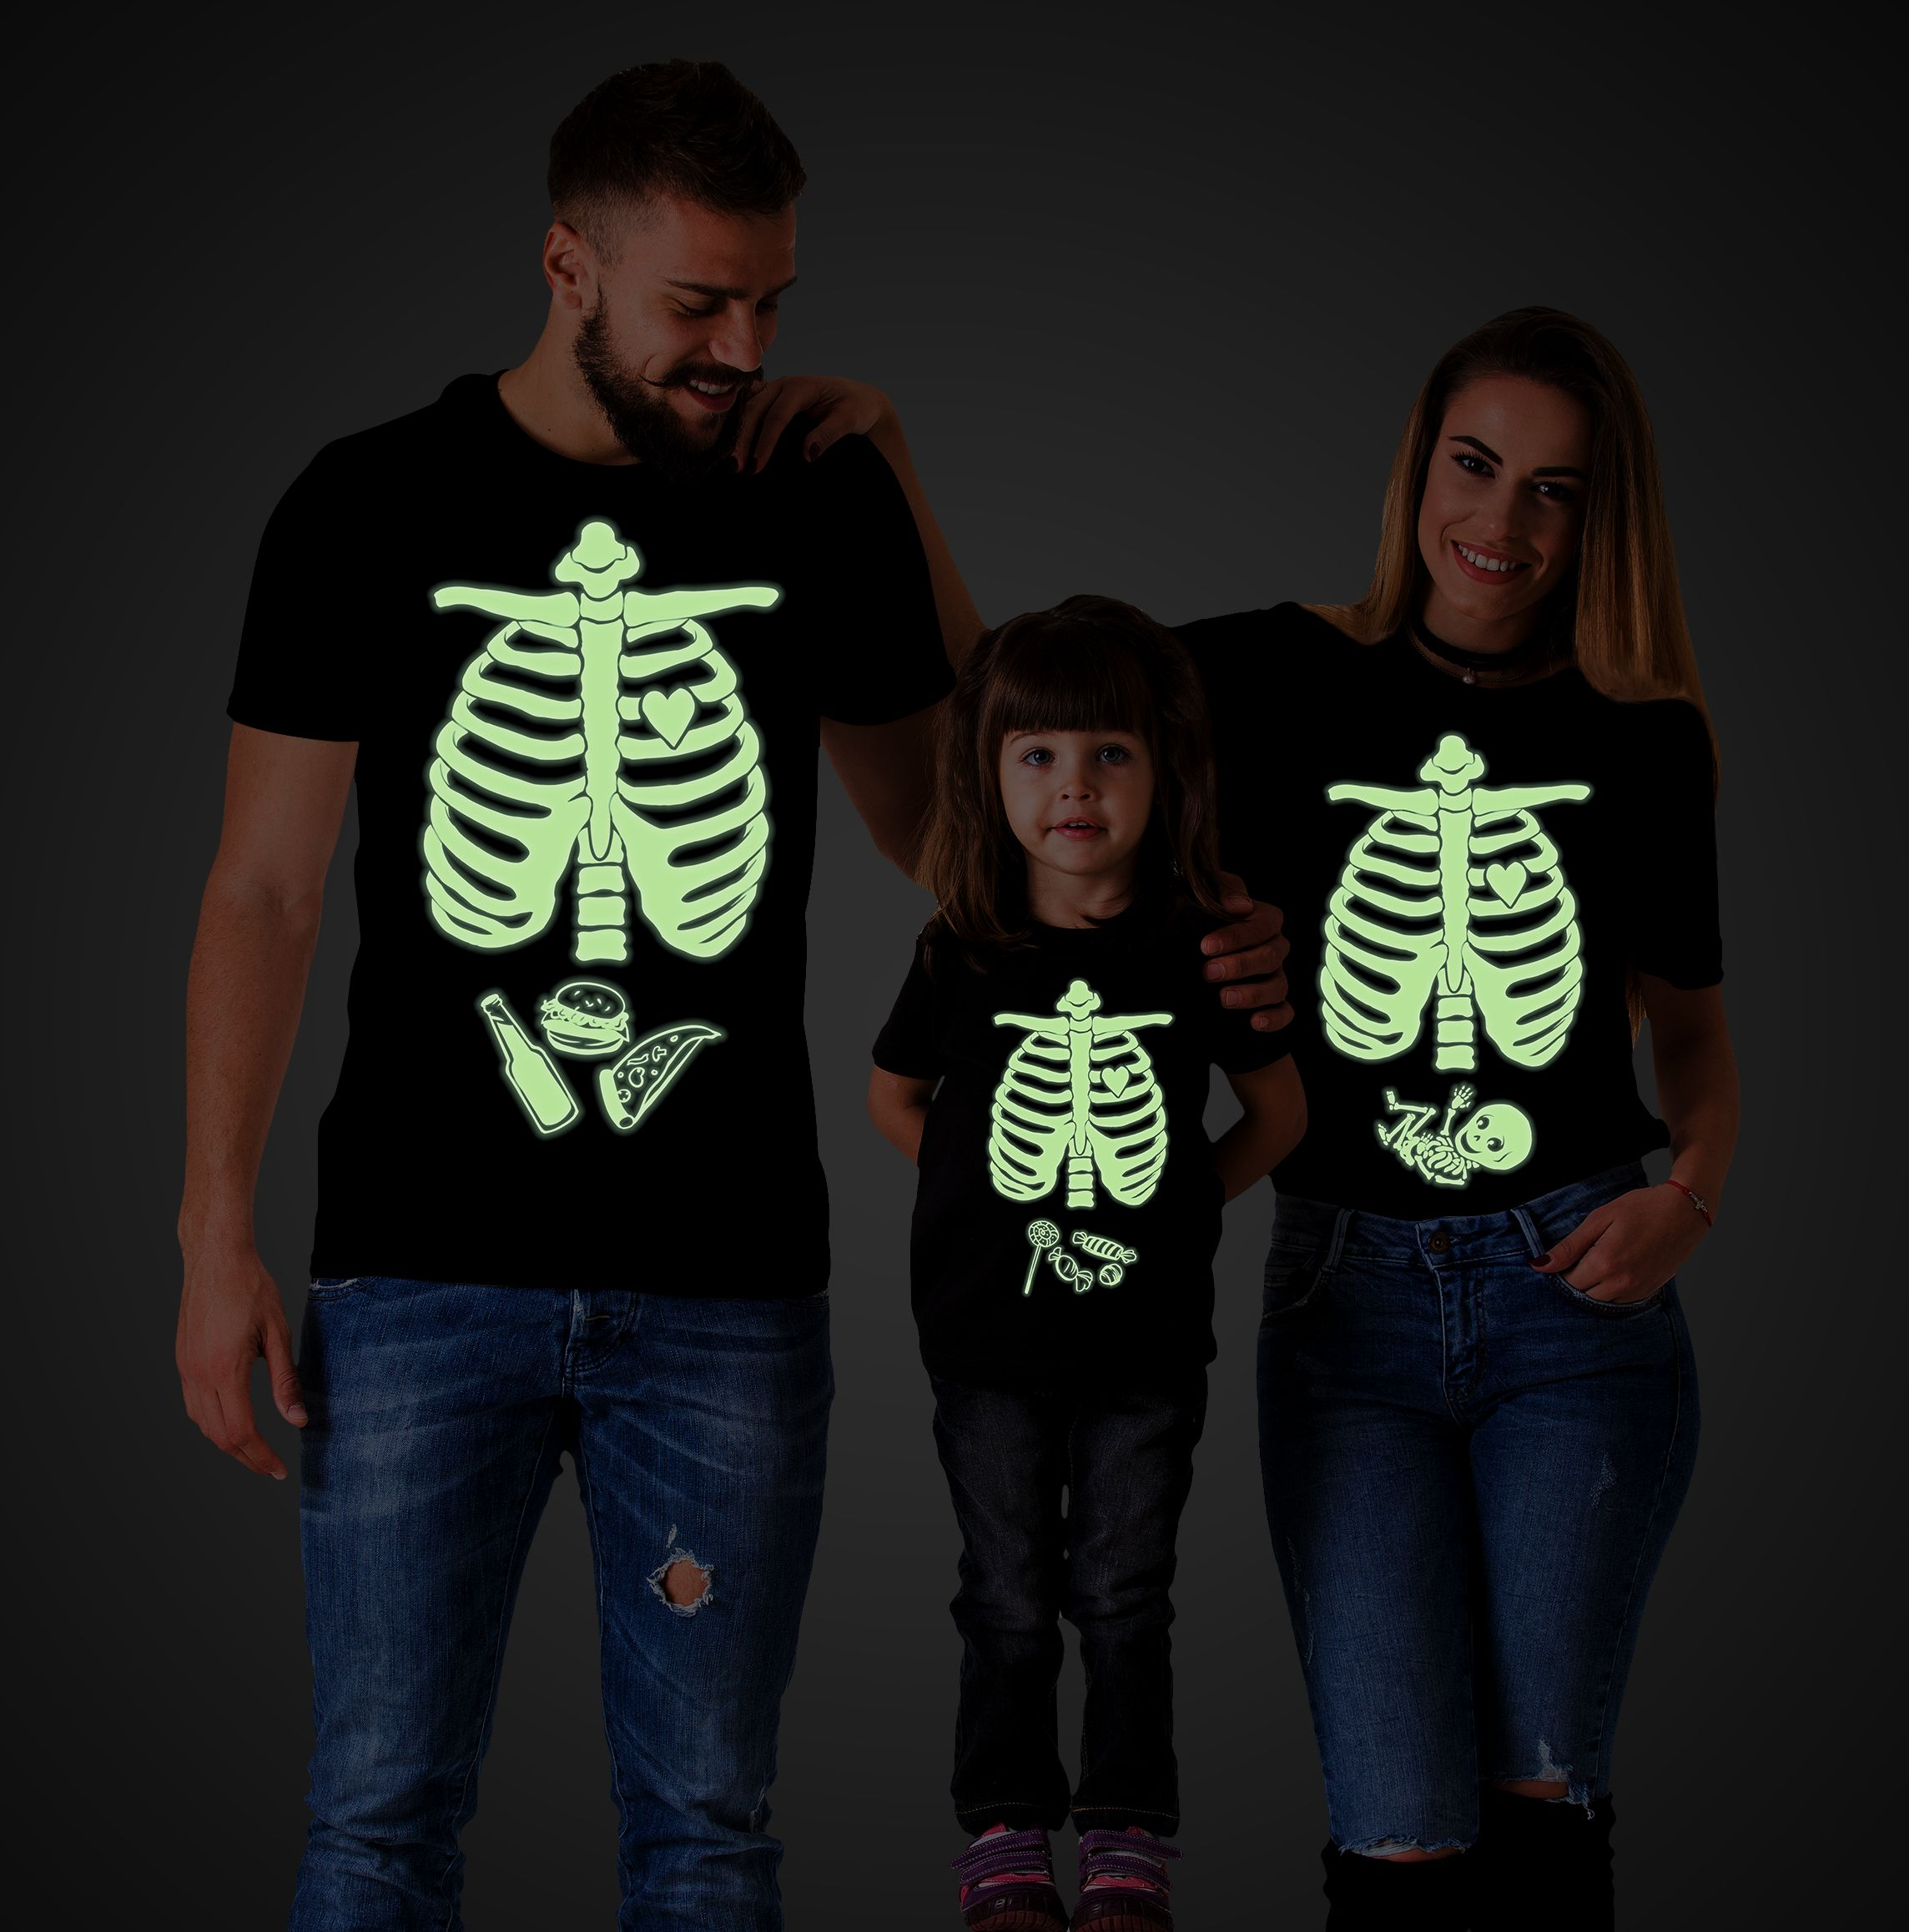 2ac0b1580f5bd Halloween Family Shirts, Skeleton Shirts, Maternity Shirt